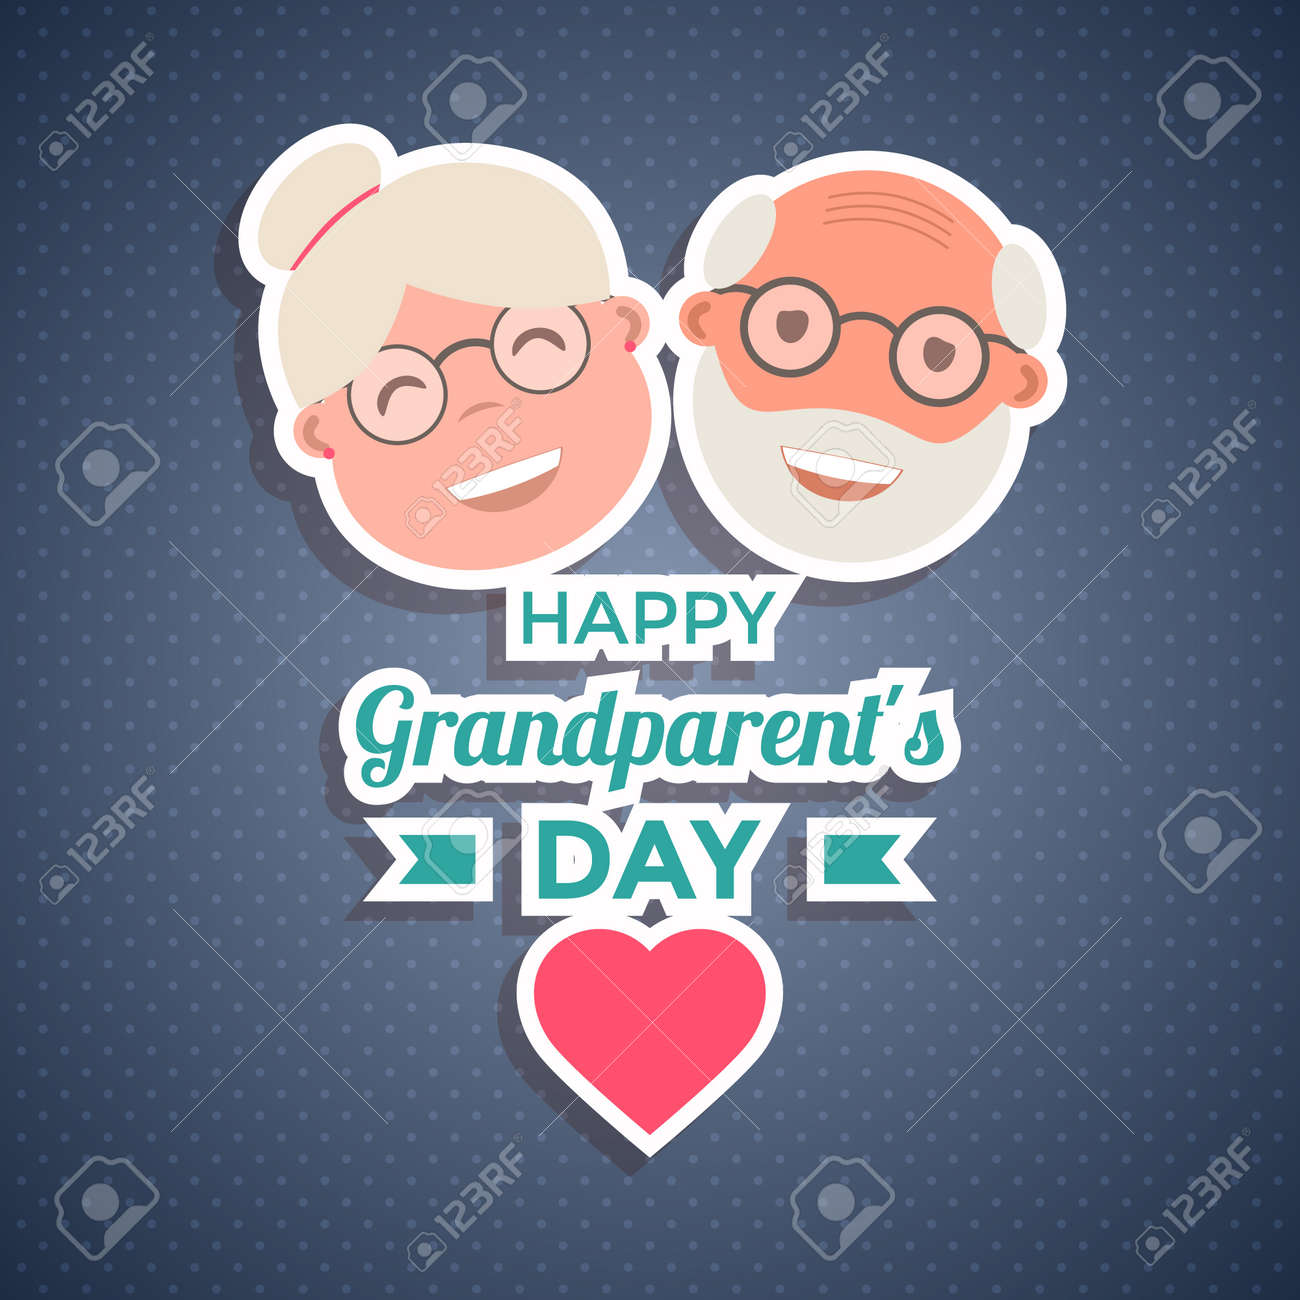 Happy Grandparents Day Greetings For Card Banner Or Poster Royalty